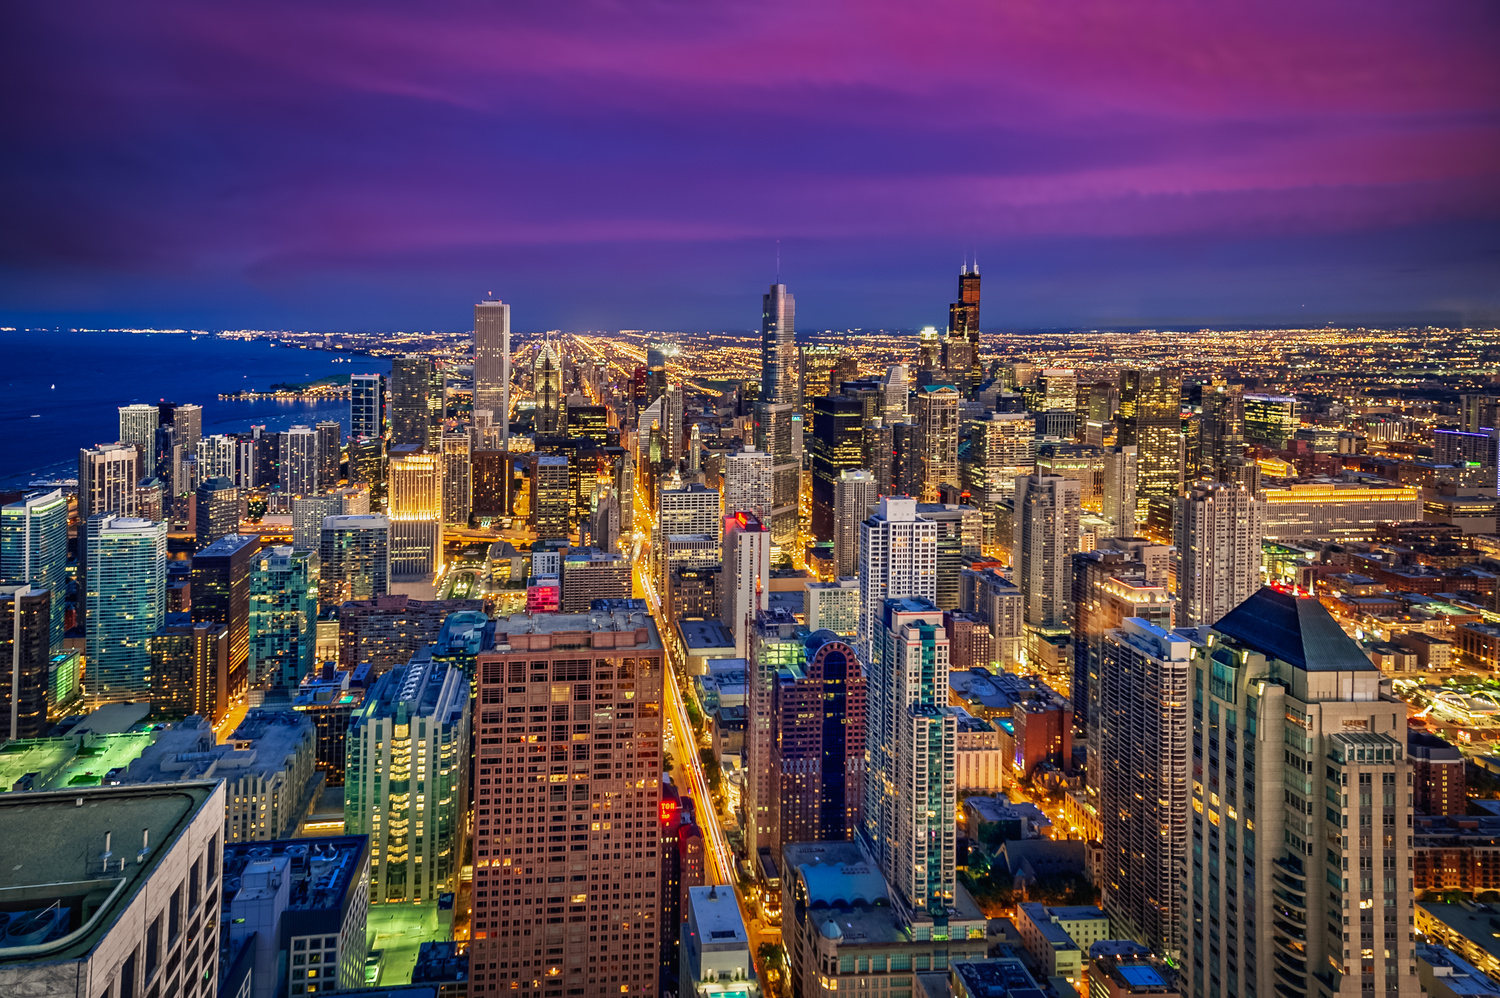 Chicago Twilight by Alex Hill